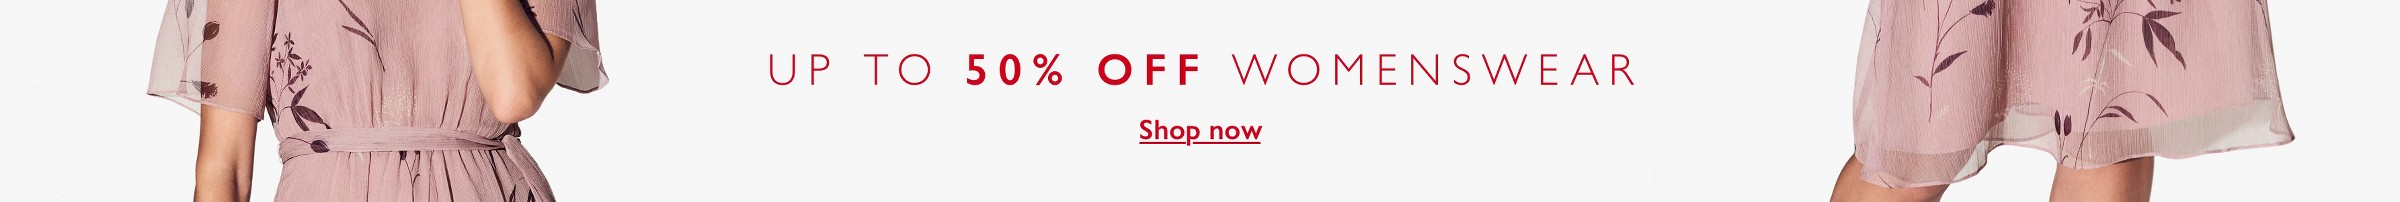 up to 50% OFF womenswear